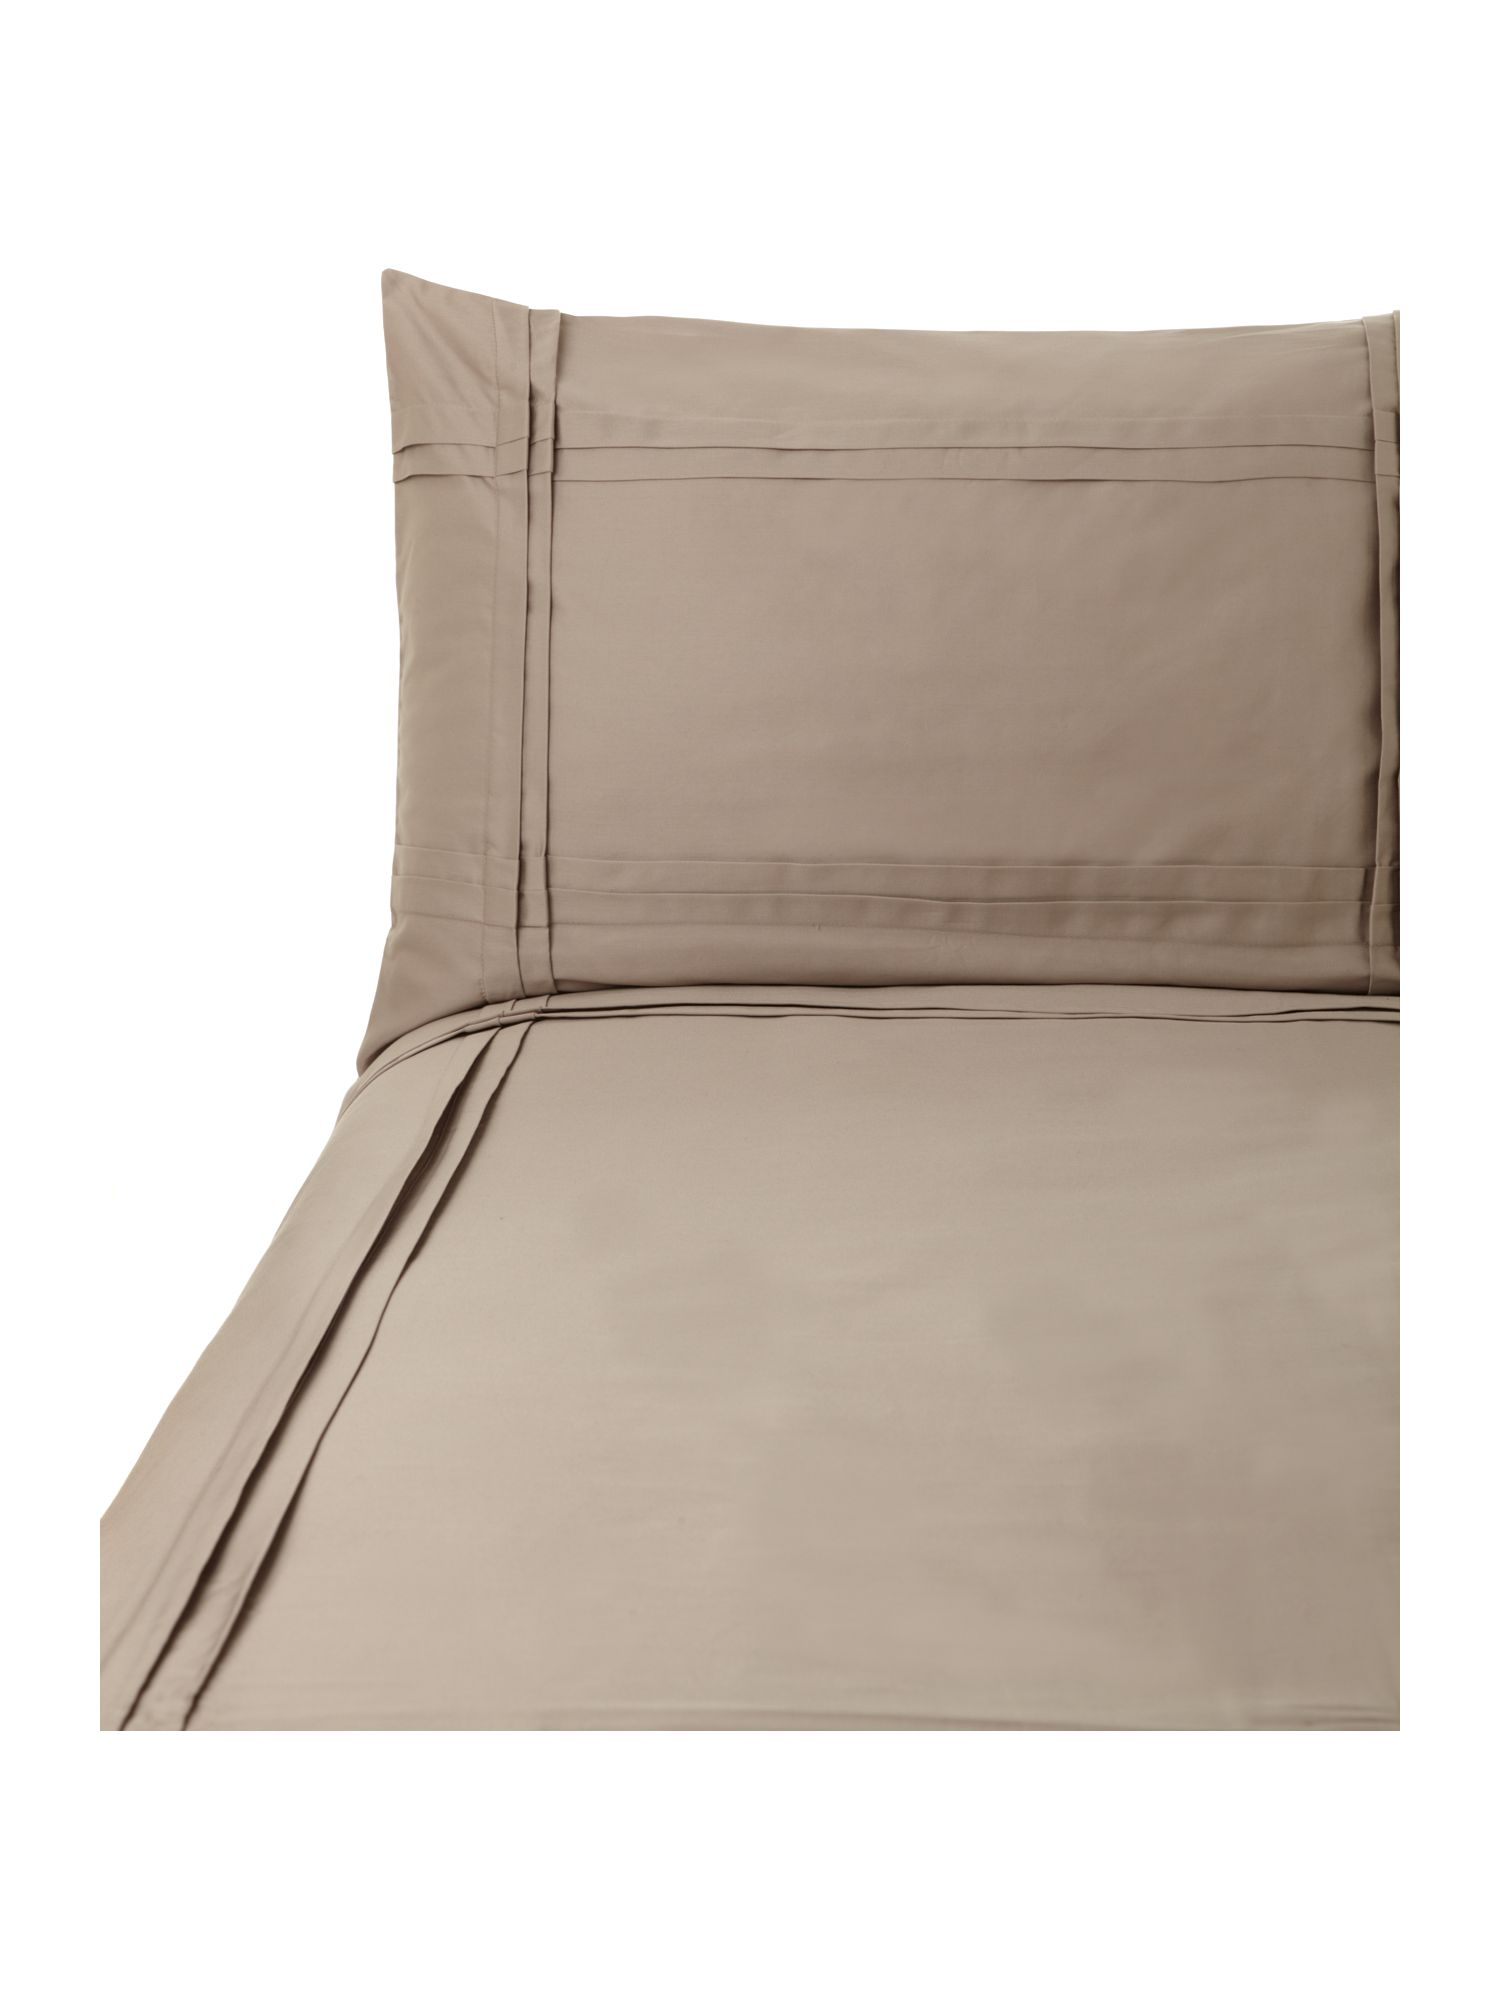 Criss Cross Pleats superking duvet cover set